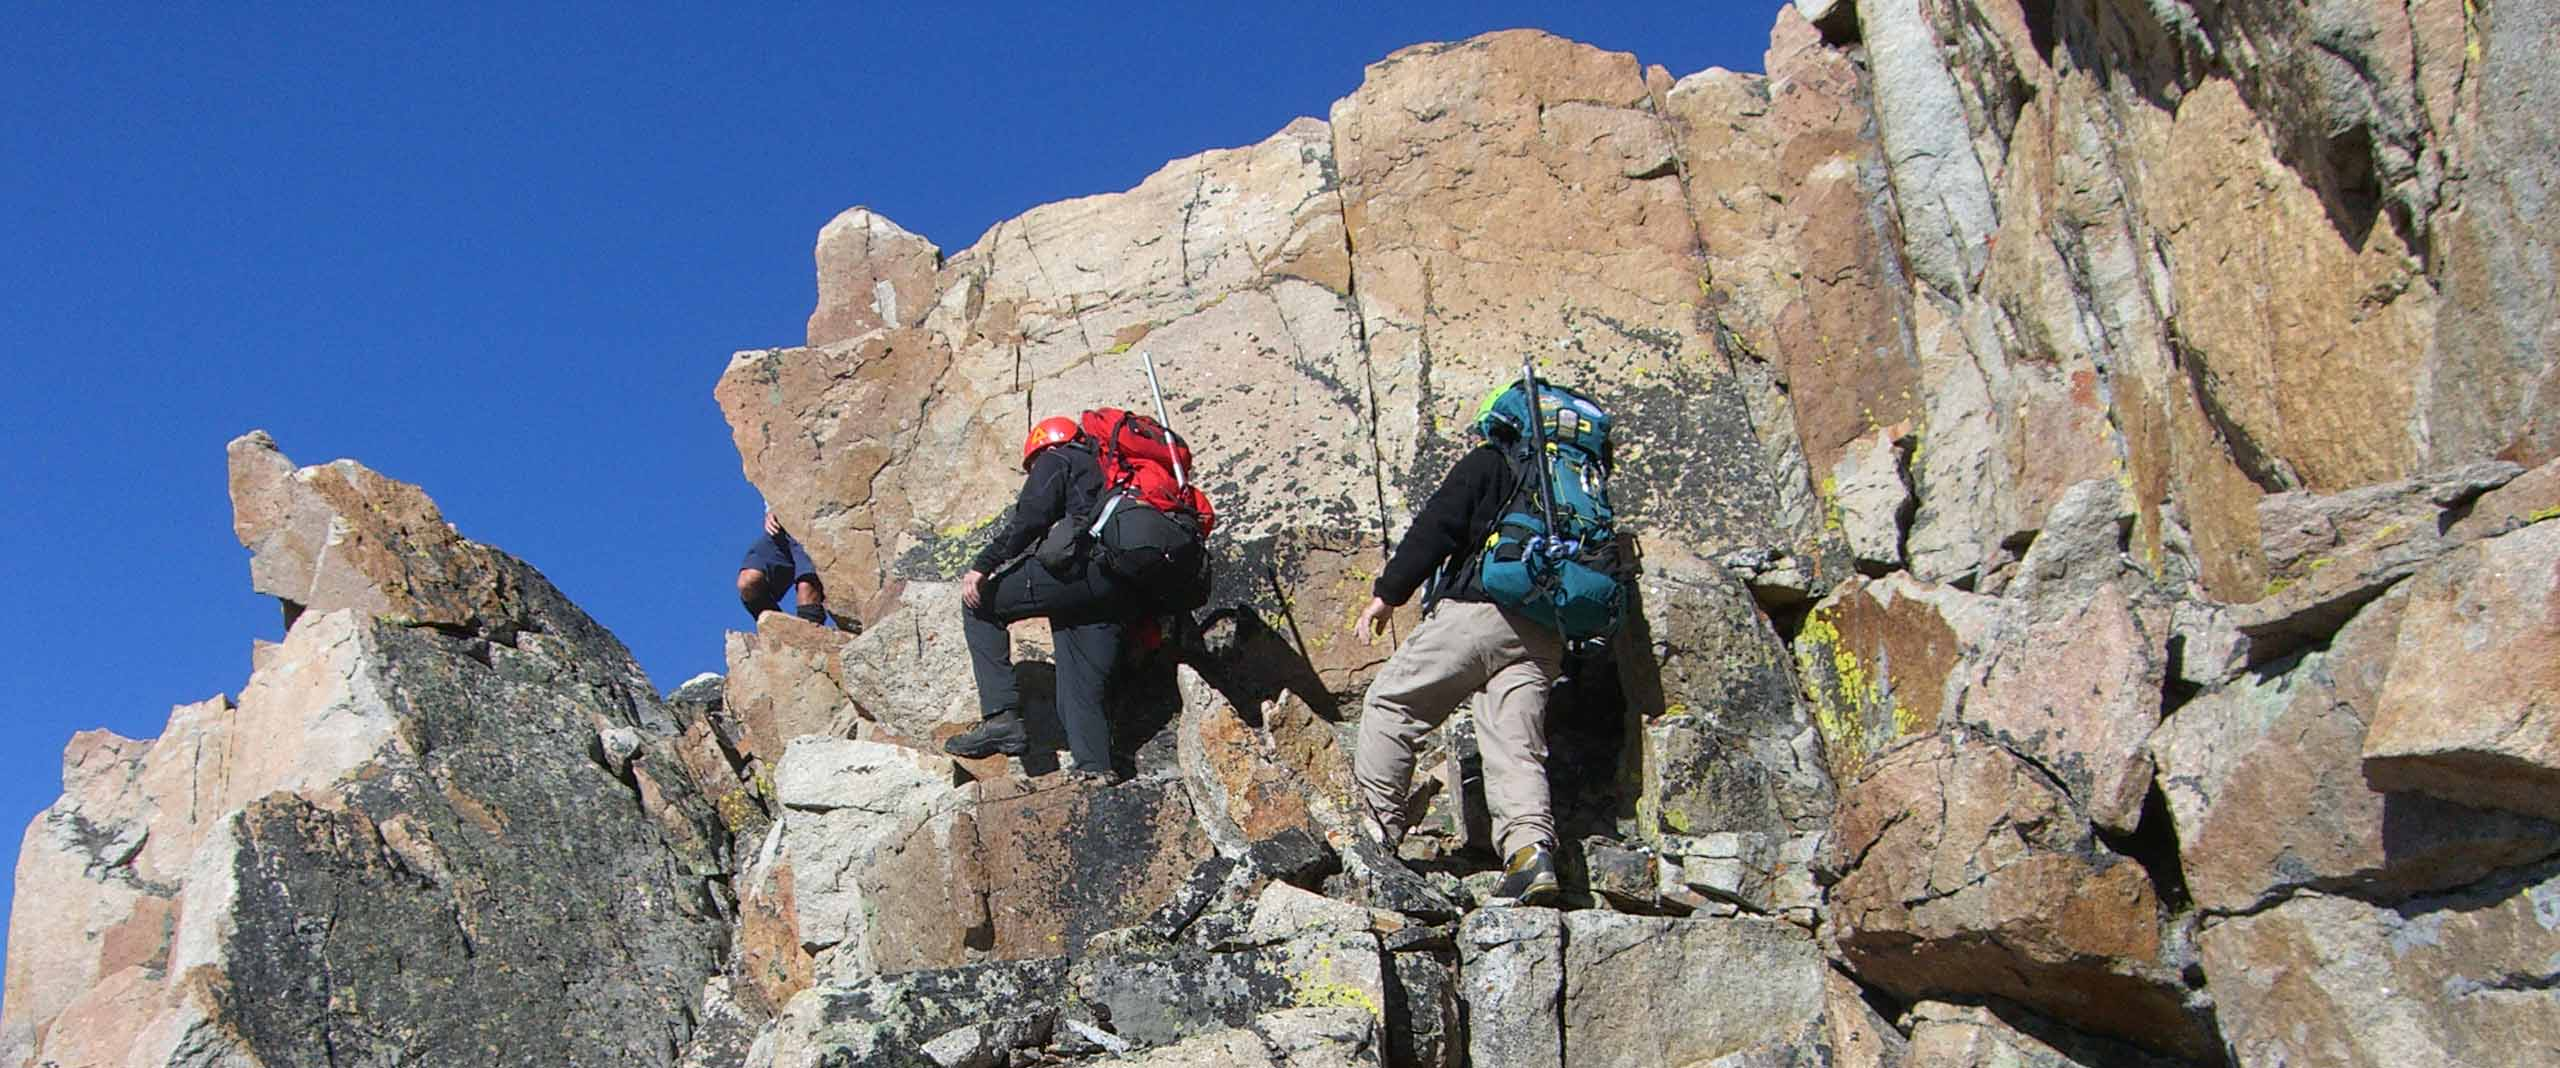 image of hikers scrambling up the side of a mountain.